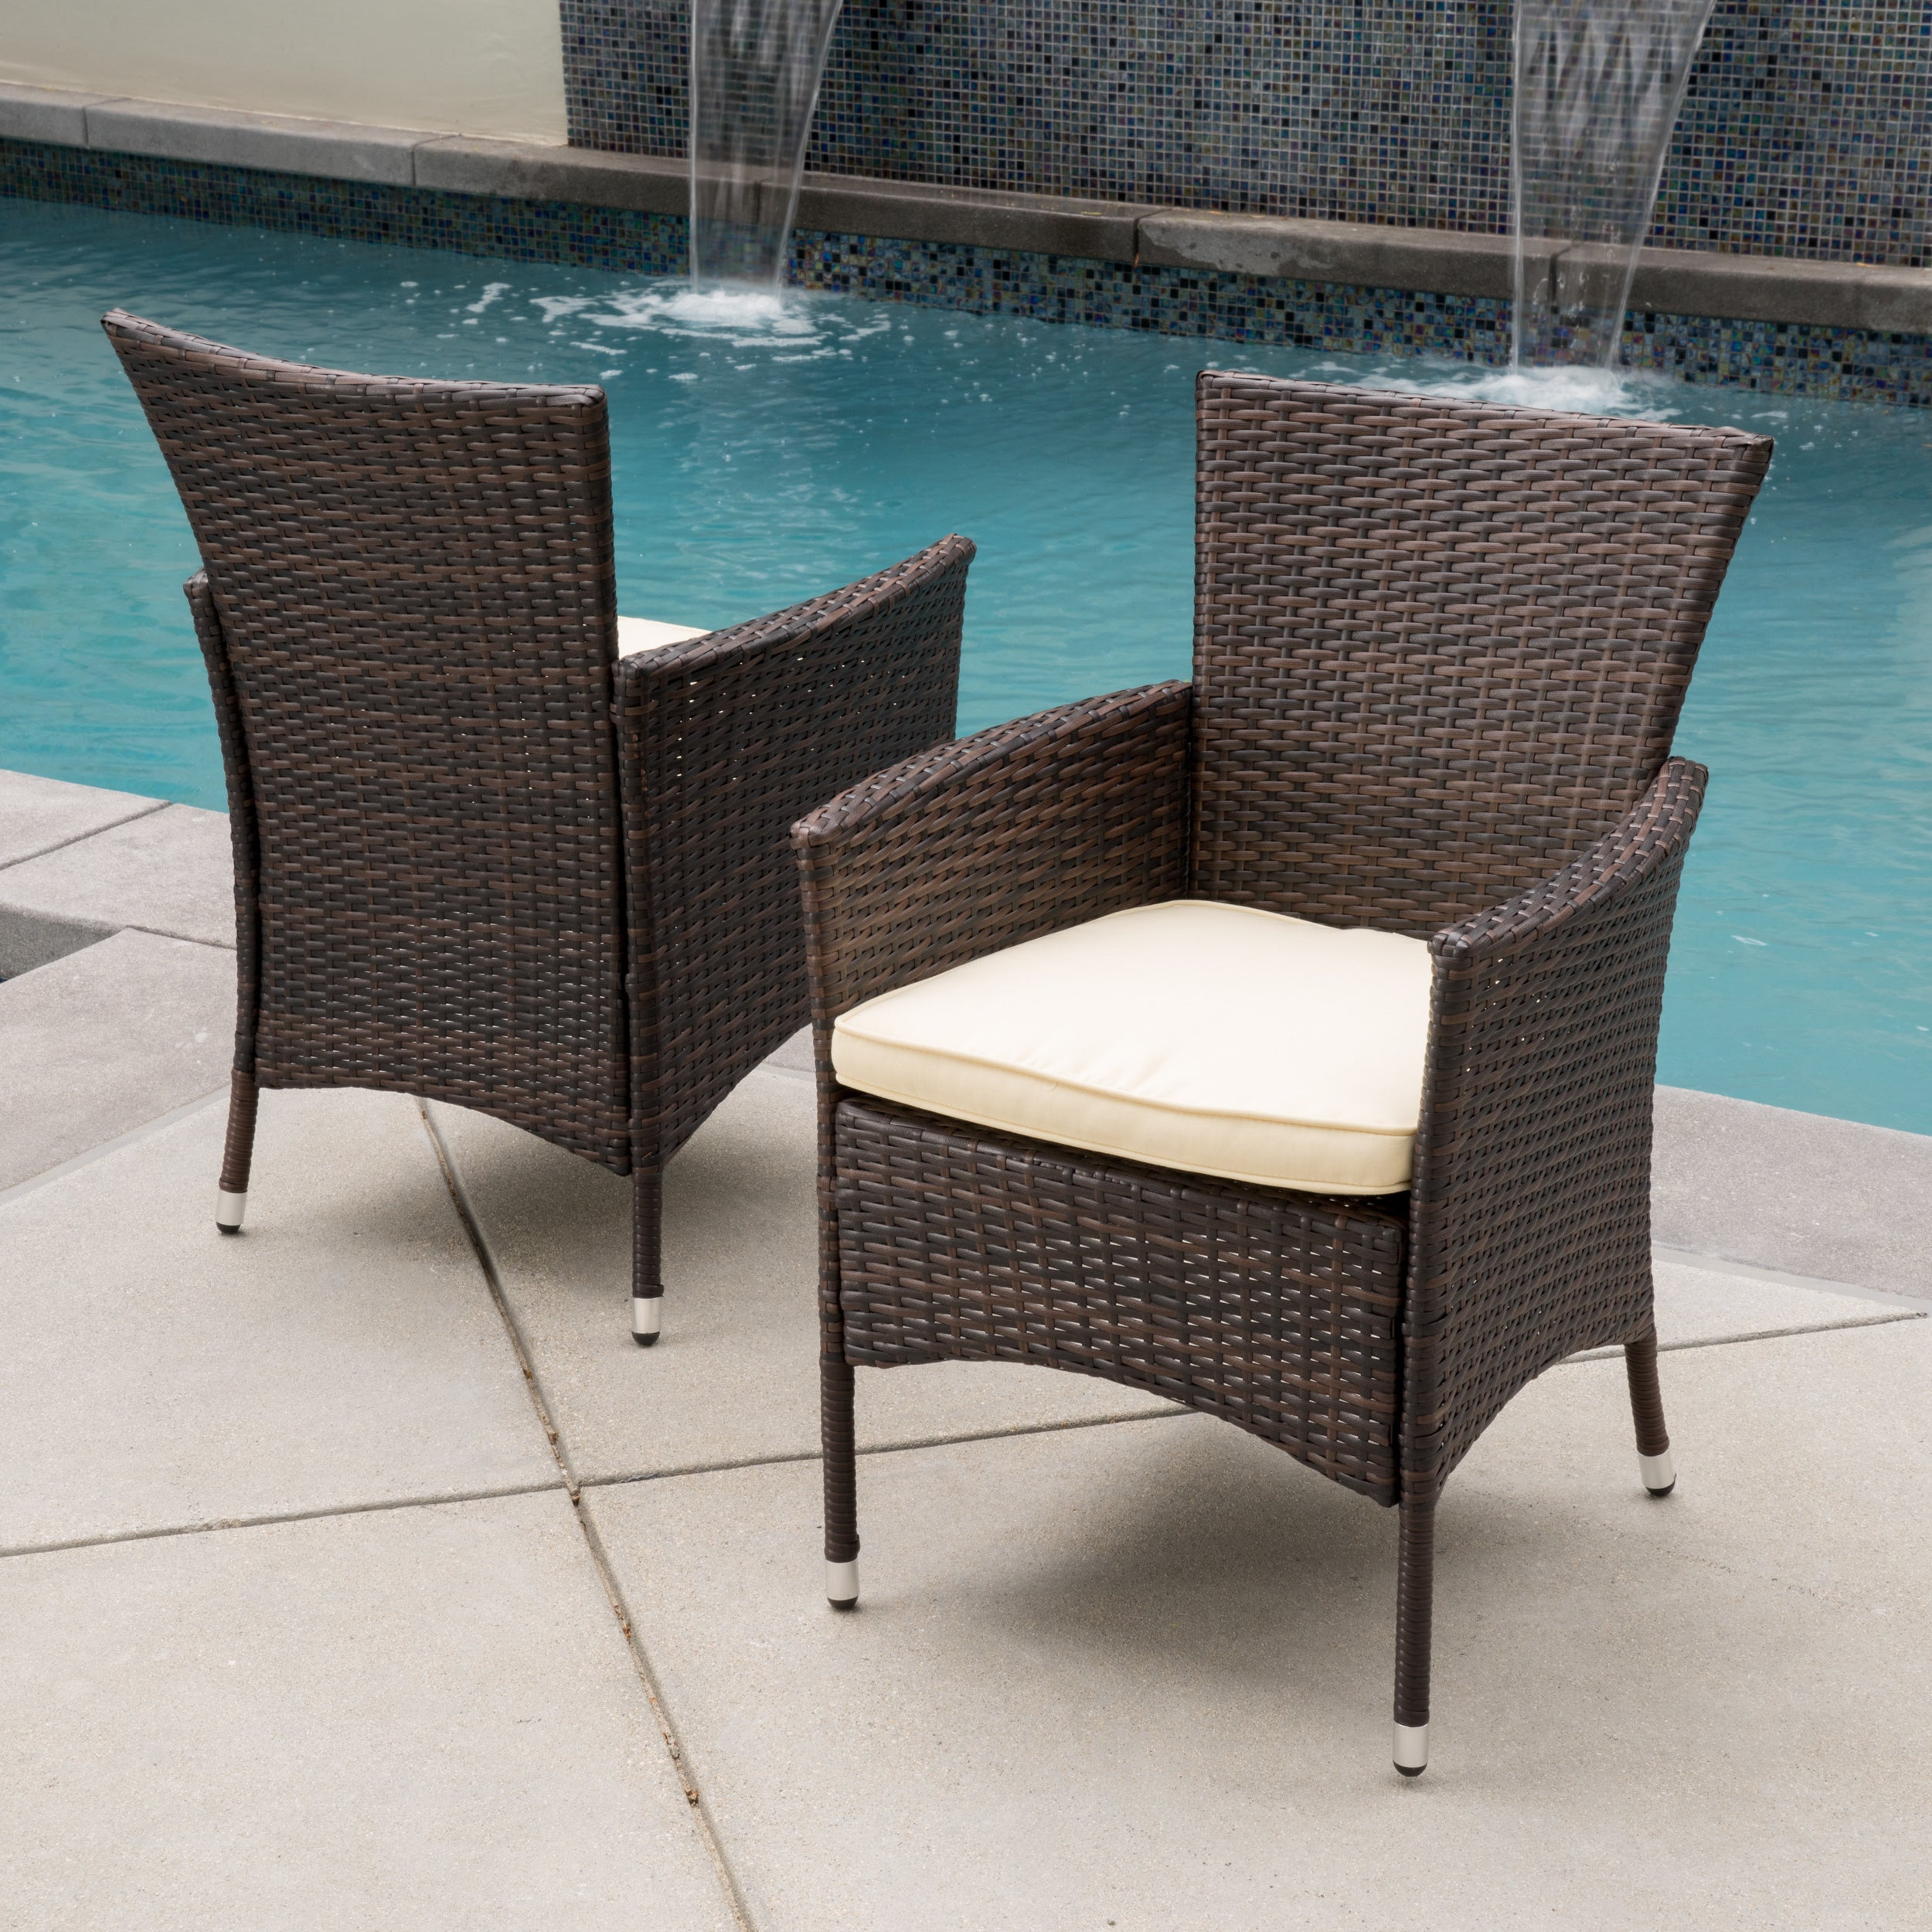 Malta Outdoor Wicker Dining Chair with Cushion by Christopher Knight Home ( Set of 2) - Free Shipping Today - Overstock - 17298403 & Malta Outdoor Wicker Dining Chair with Cushion by Christopher Knight ...